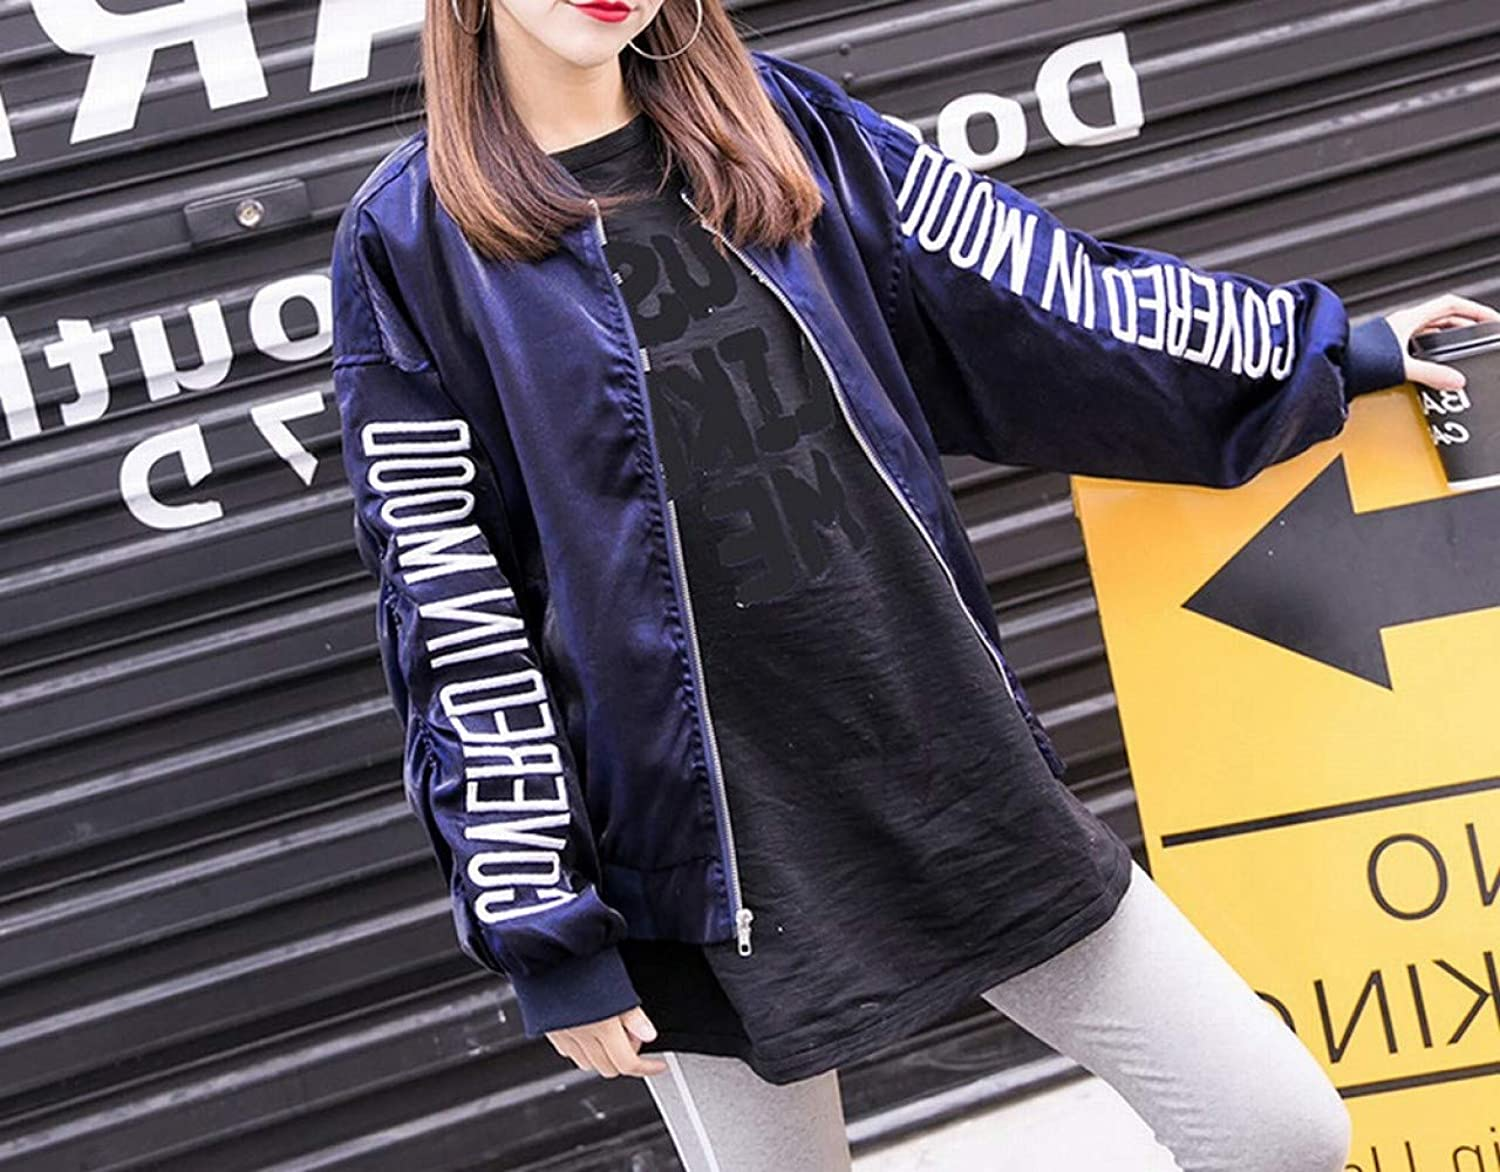 Spring and Autumn Embroidered Baseball Jacket Fashion Student Loose Street Trend BF Wind Jacket Tops Women,bluee,S DEED